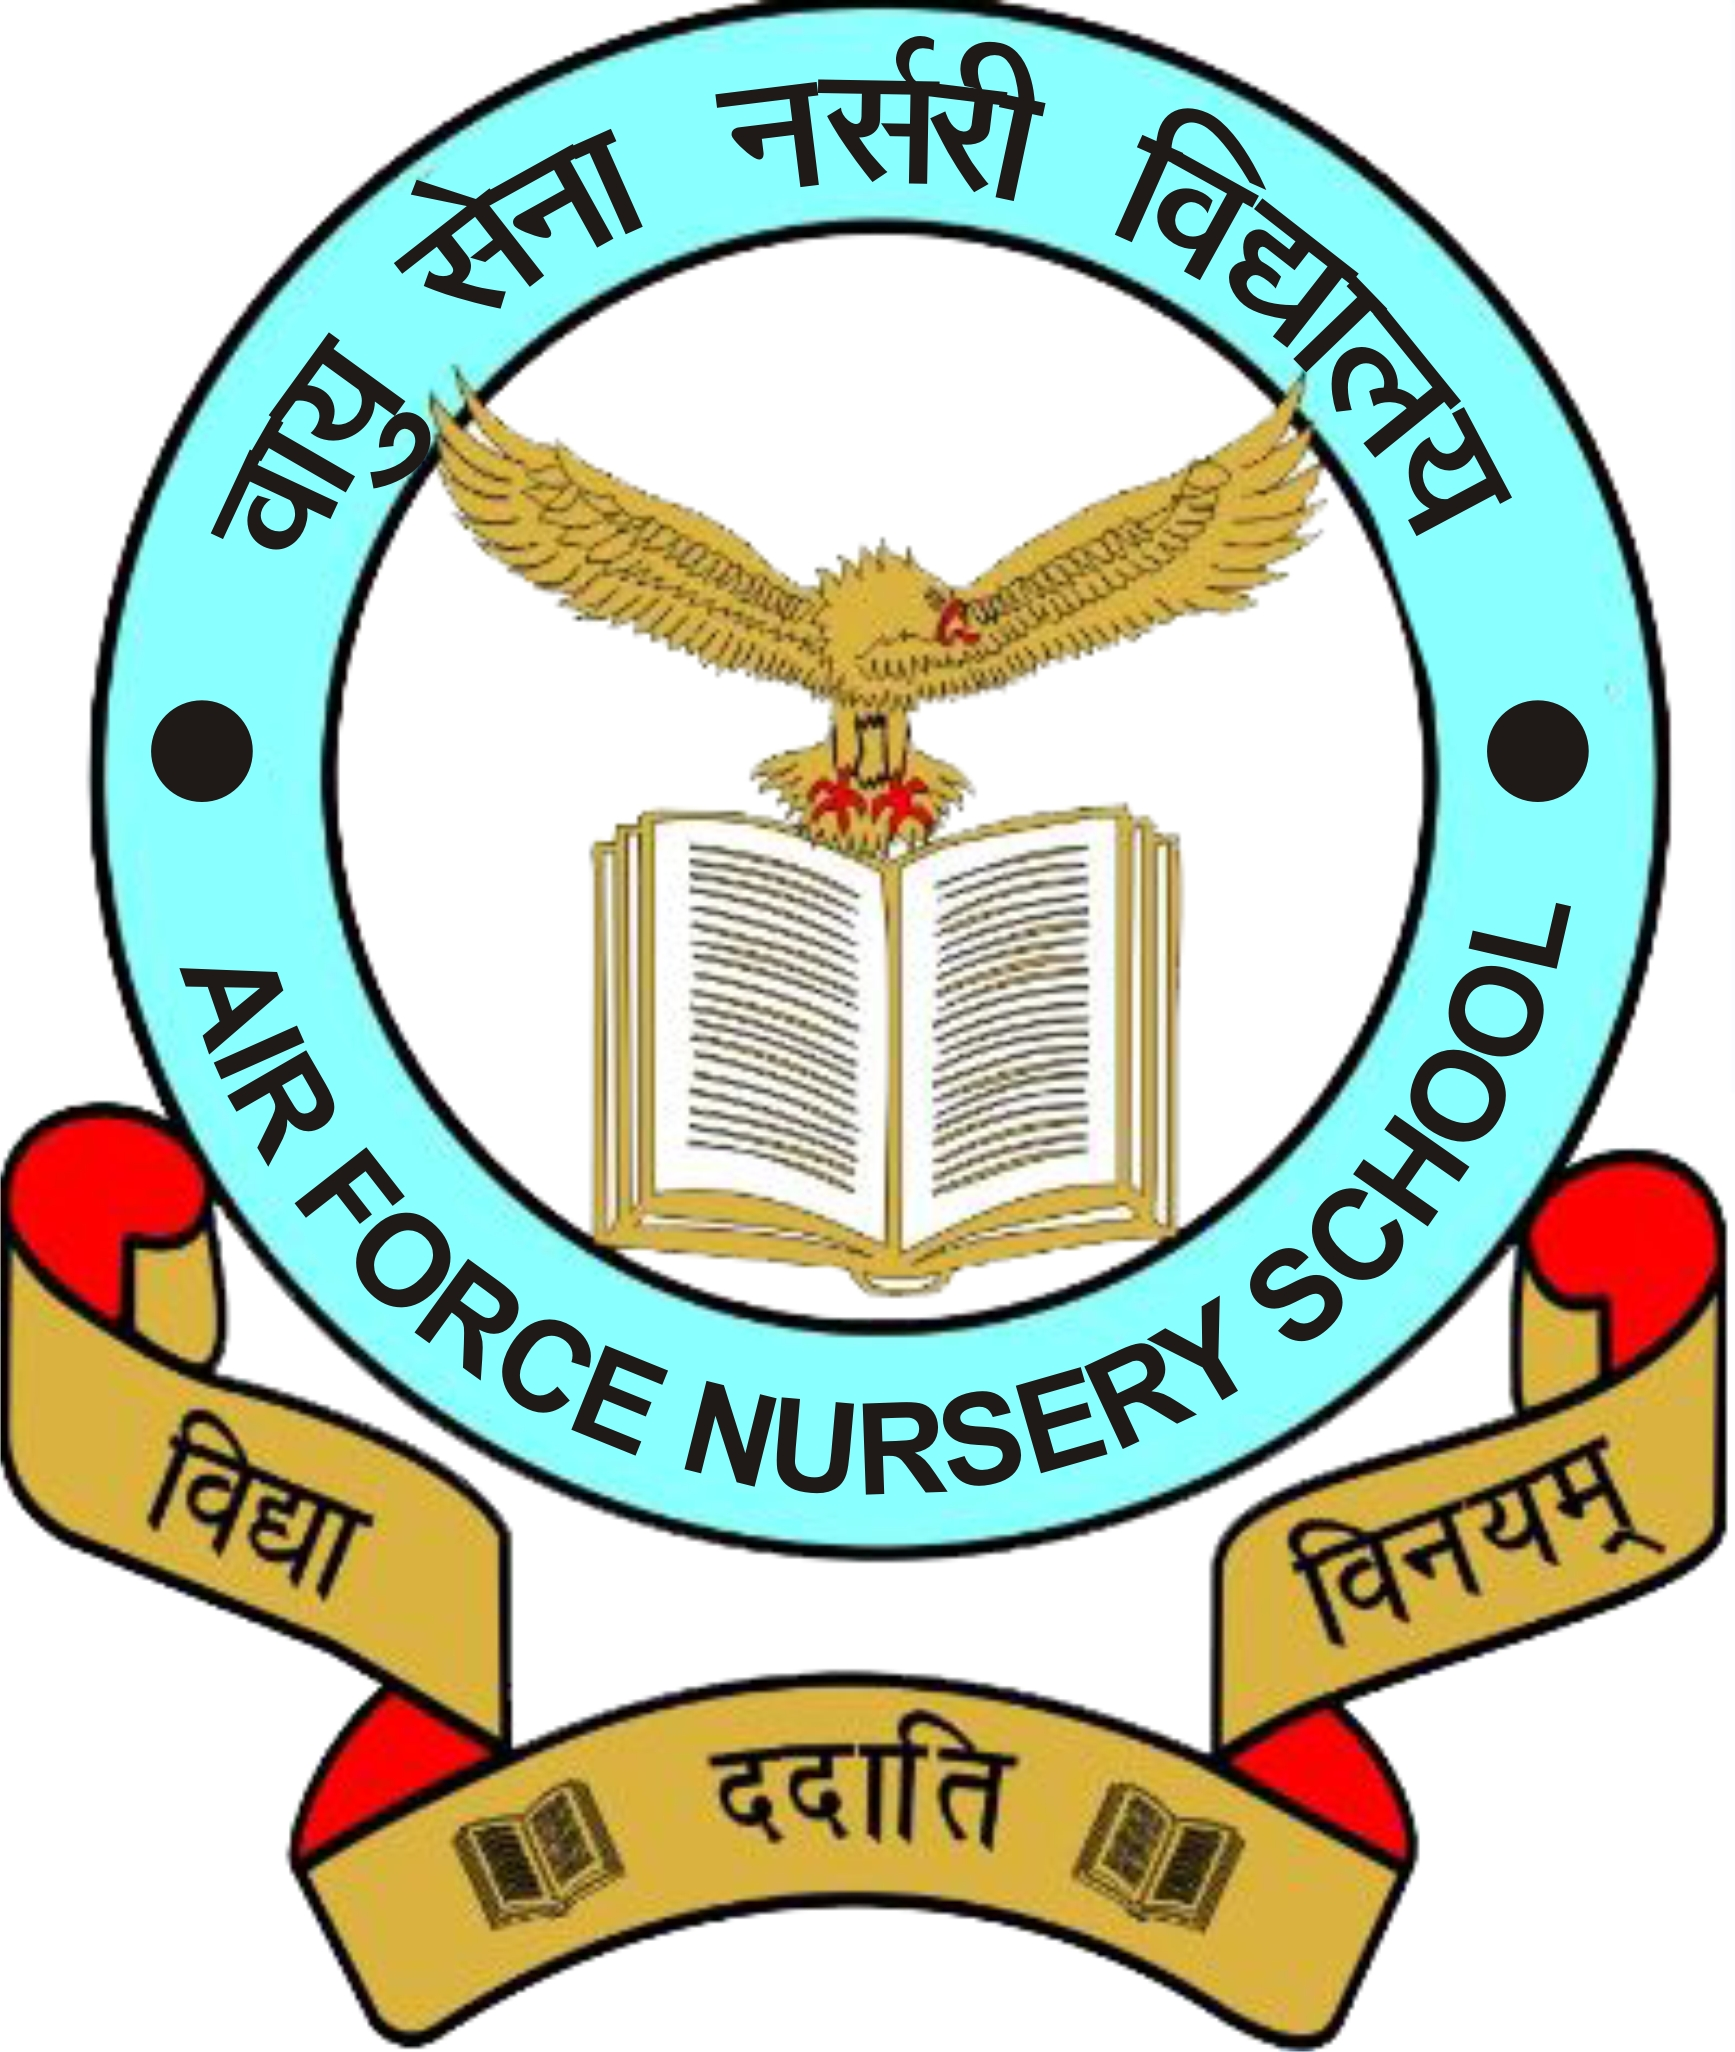 Air Force Nursery  school logo